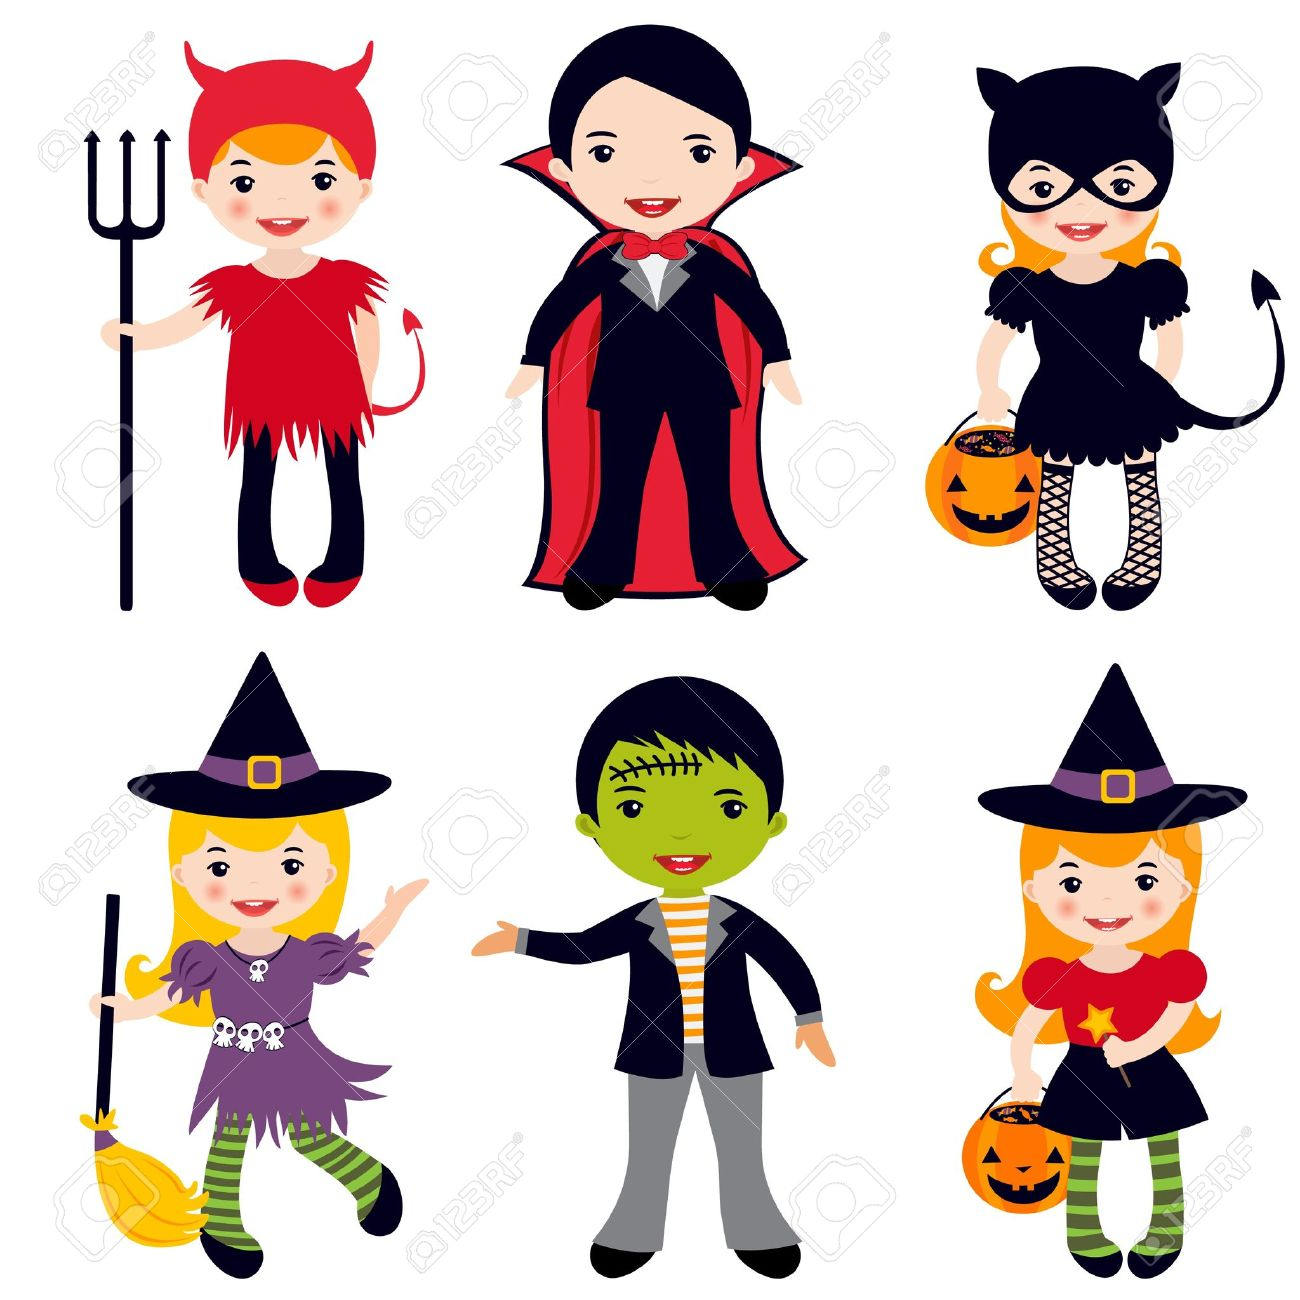 An Illustration Of Kids In Halloween Costumes Royalty Free ...